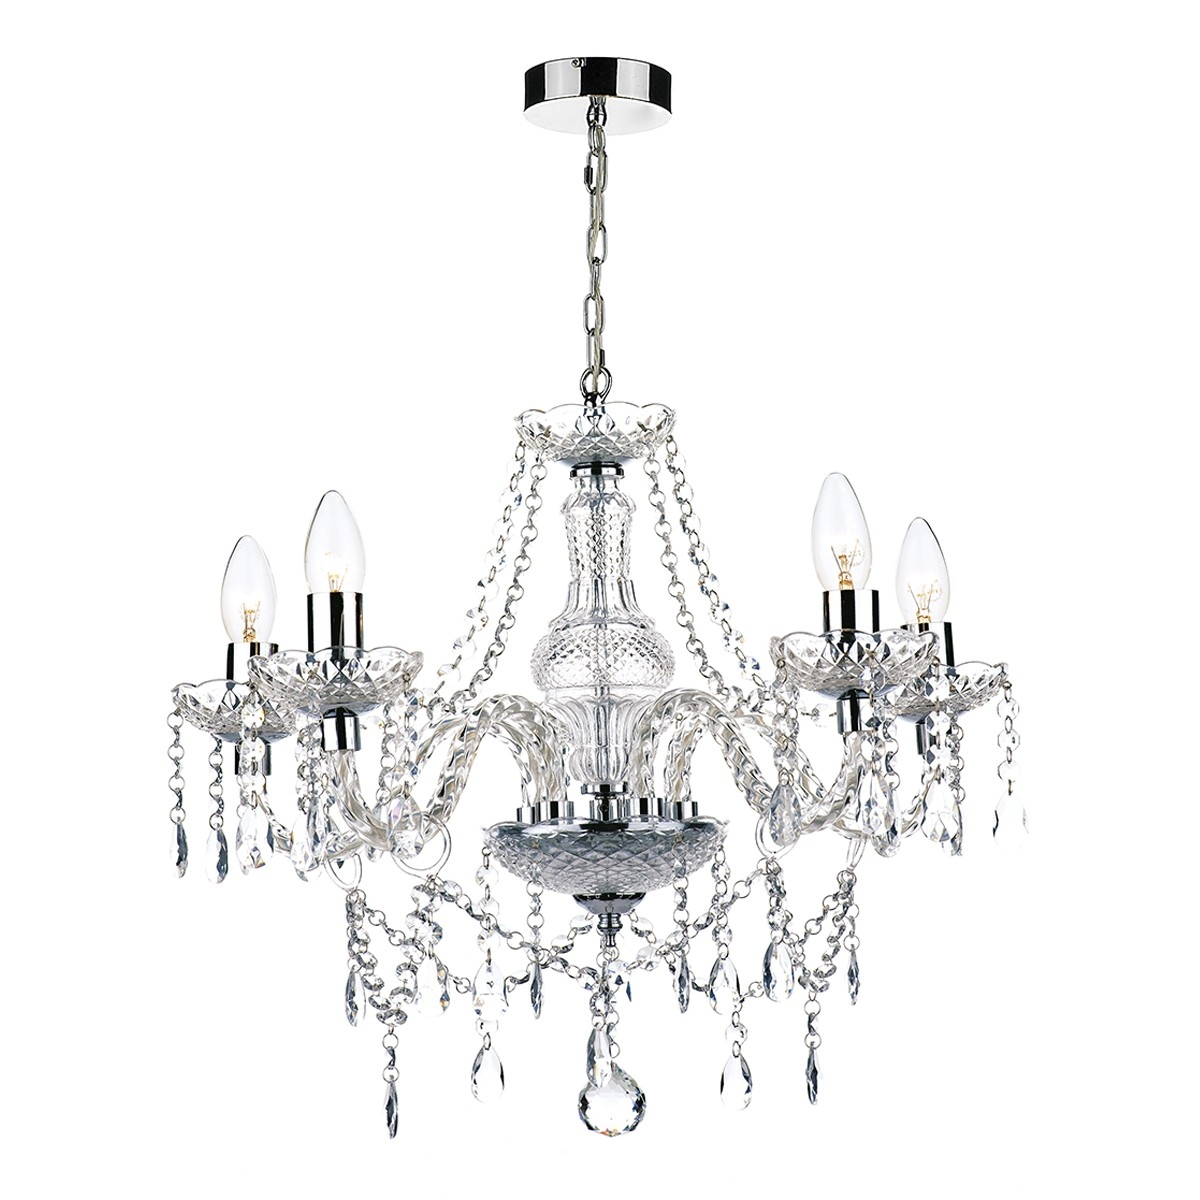 15 Chrome And Glass Chandelier